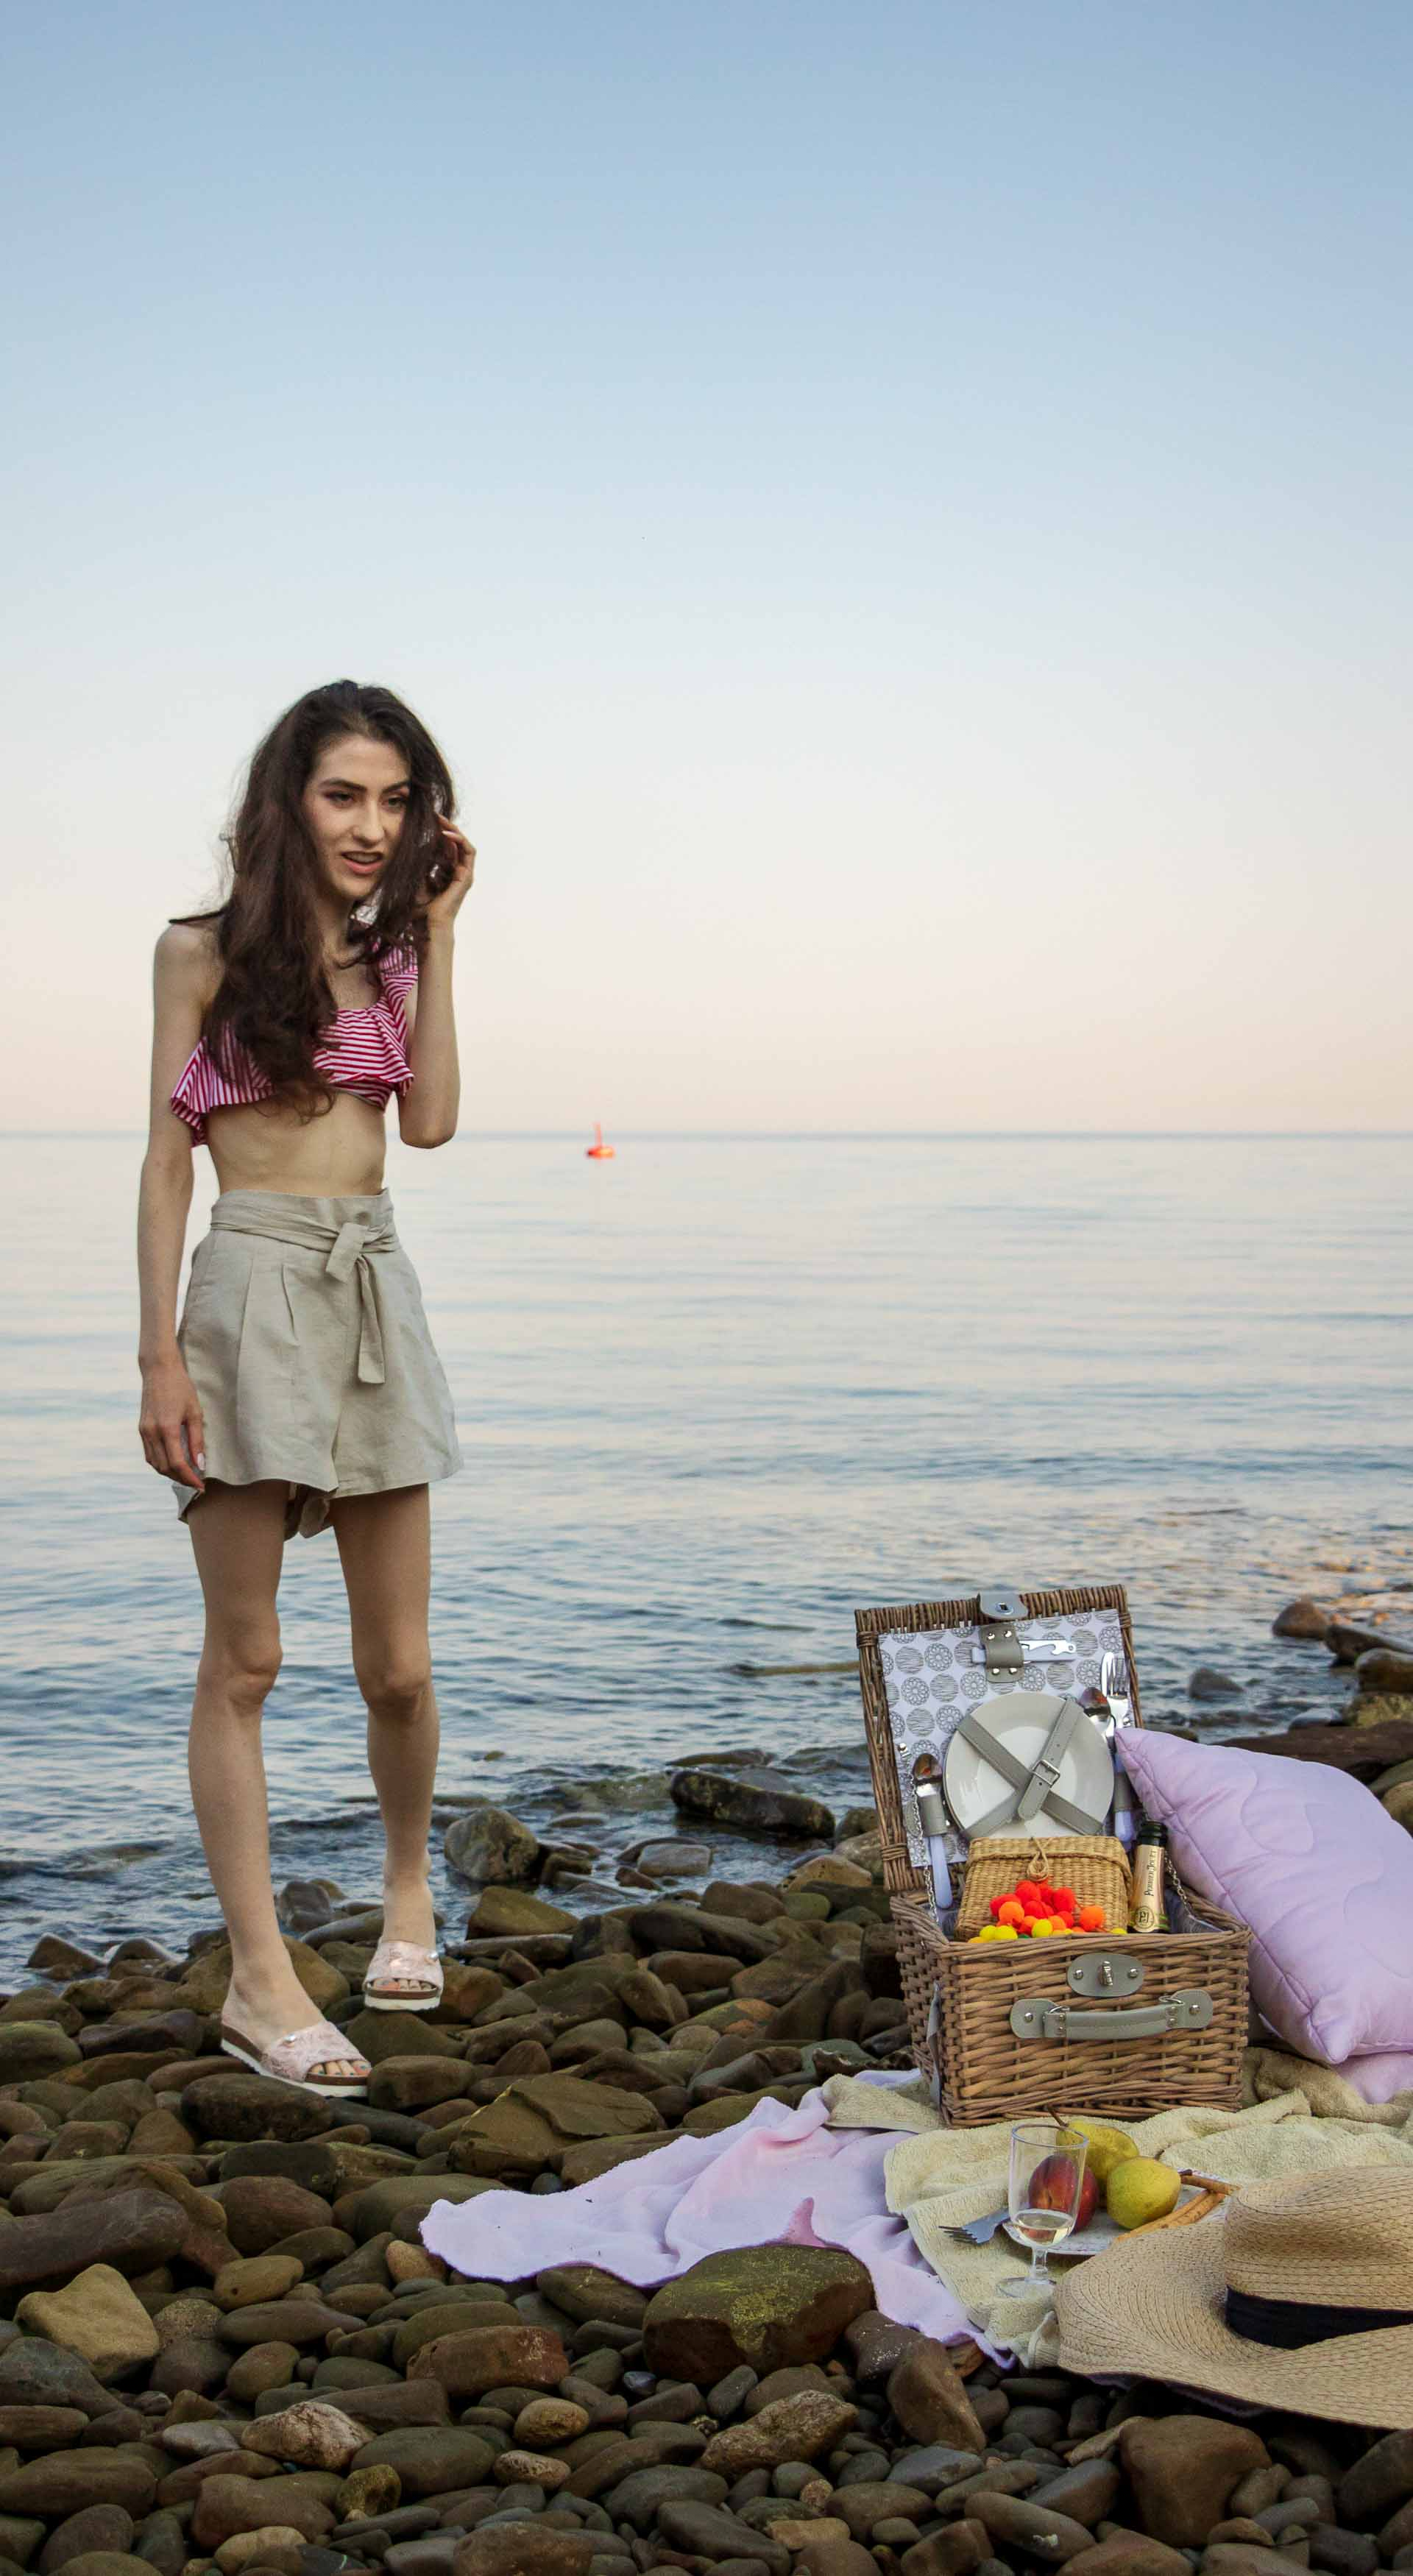 Slovenian Fashion Blogger Veronika Lipar of Brunette from Wall wearing beige linen crop top, paper bag linen shorts, luxe pool slides, large straw hat, Nannacay basket bag while walking to the picnic blanket on the beach